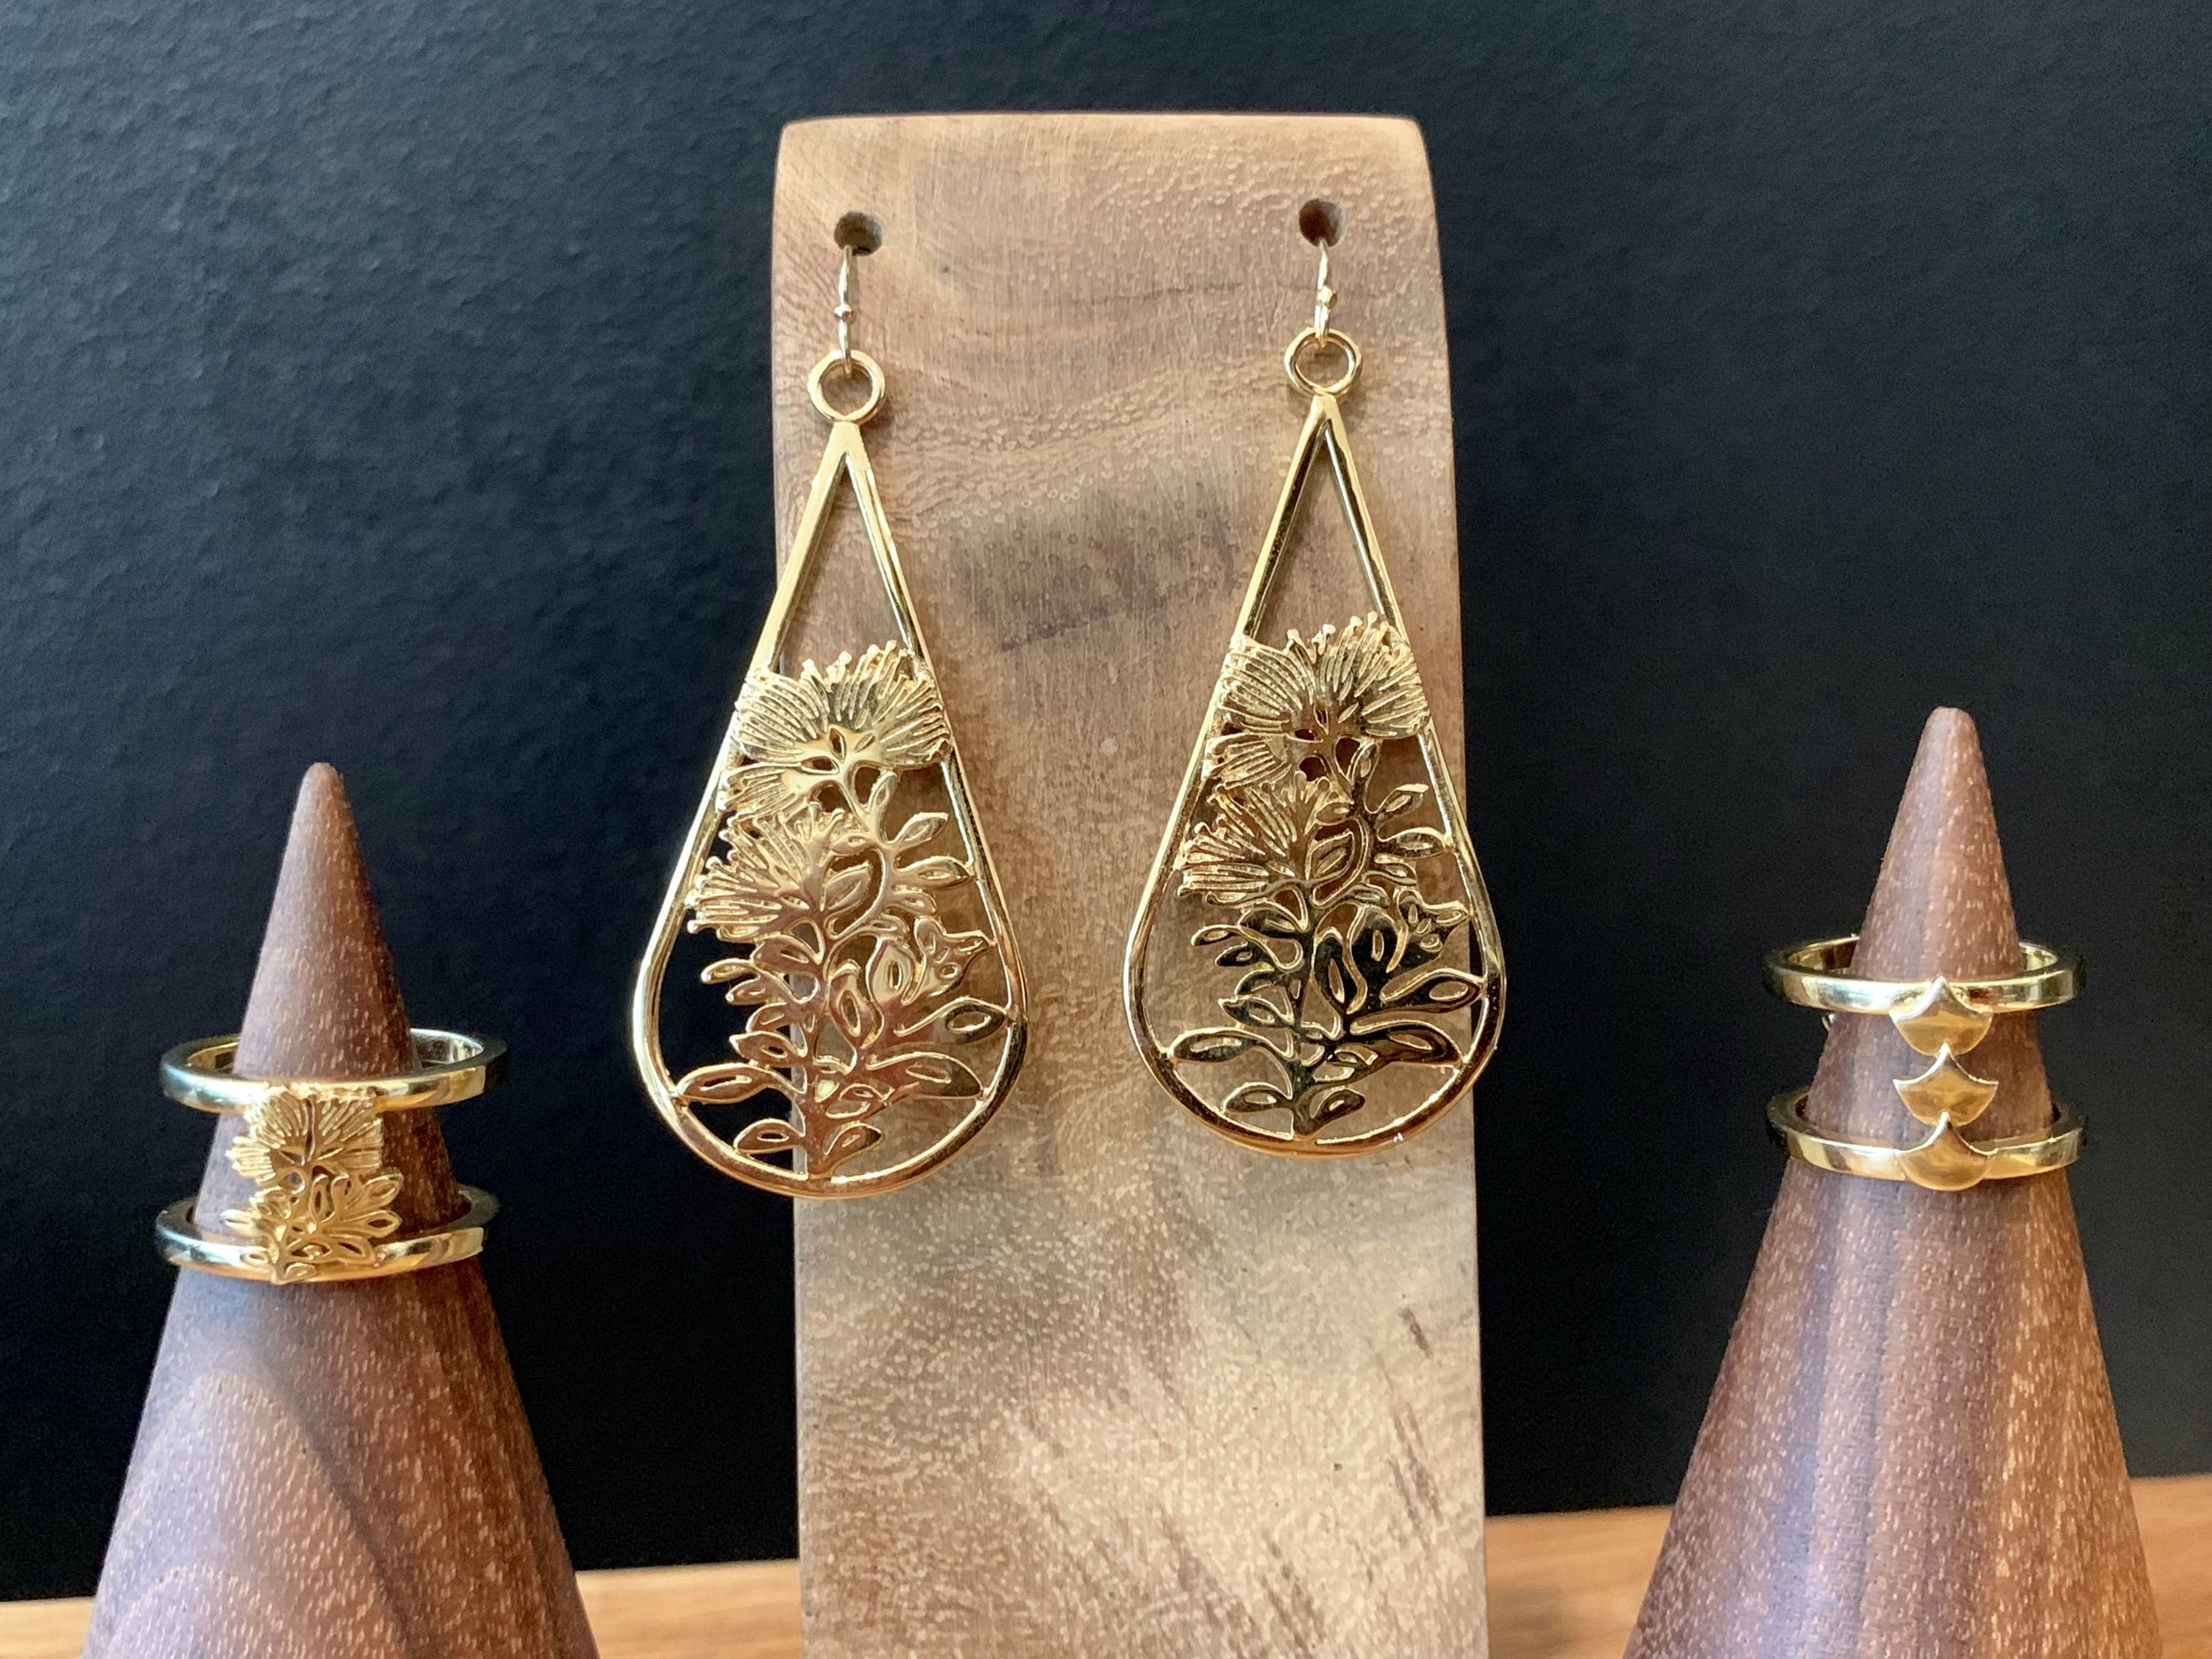 We launched our new line of custom Hawaiian designed casted jewelry - Lehua Blossom earrings and Lehua Rings